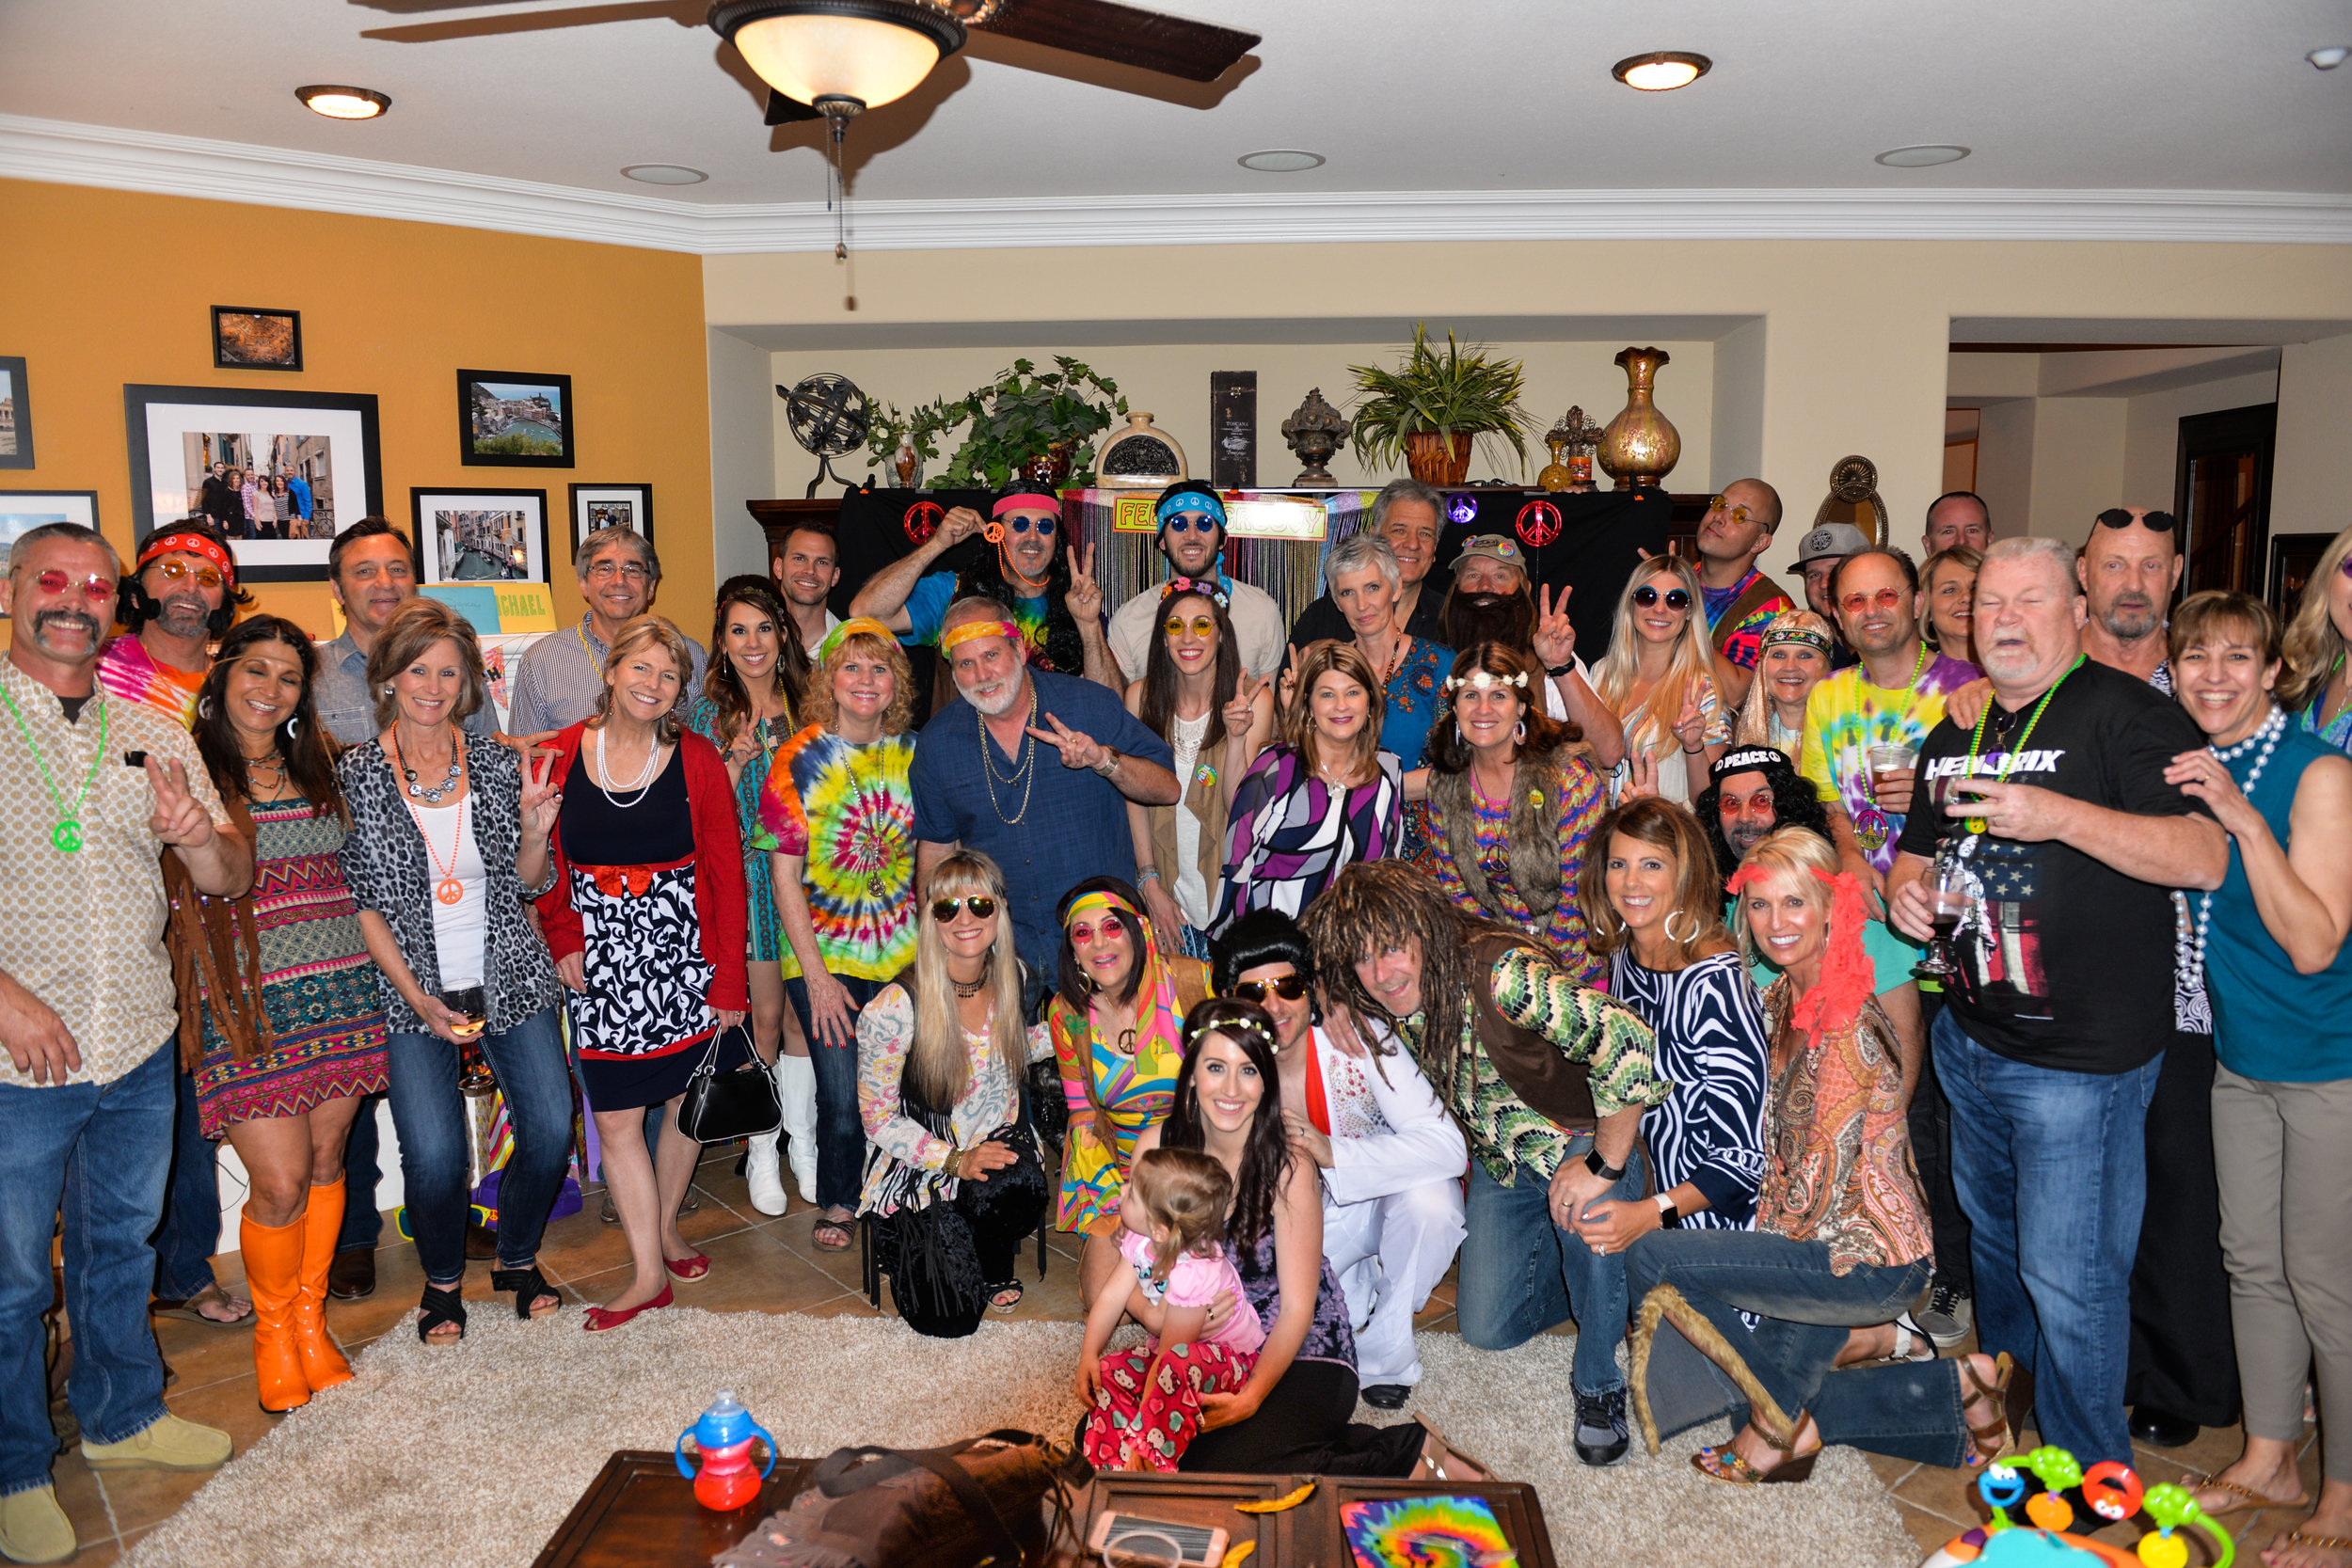 042917_Michaels60th-211.jpg